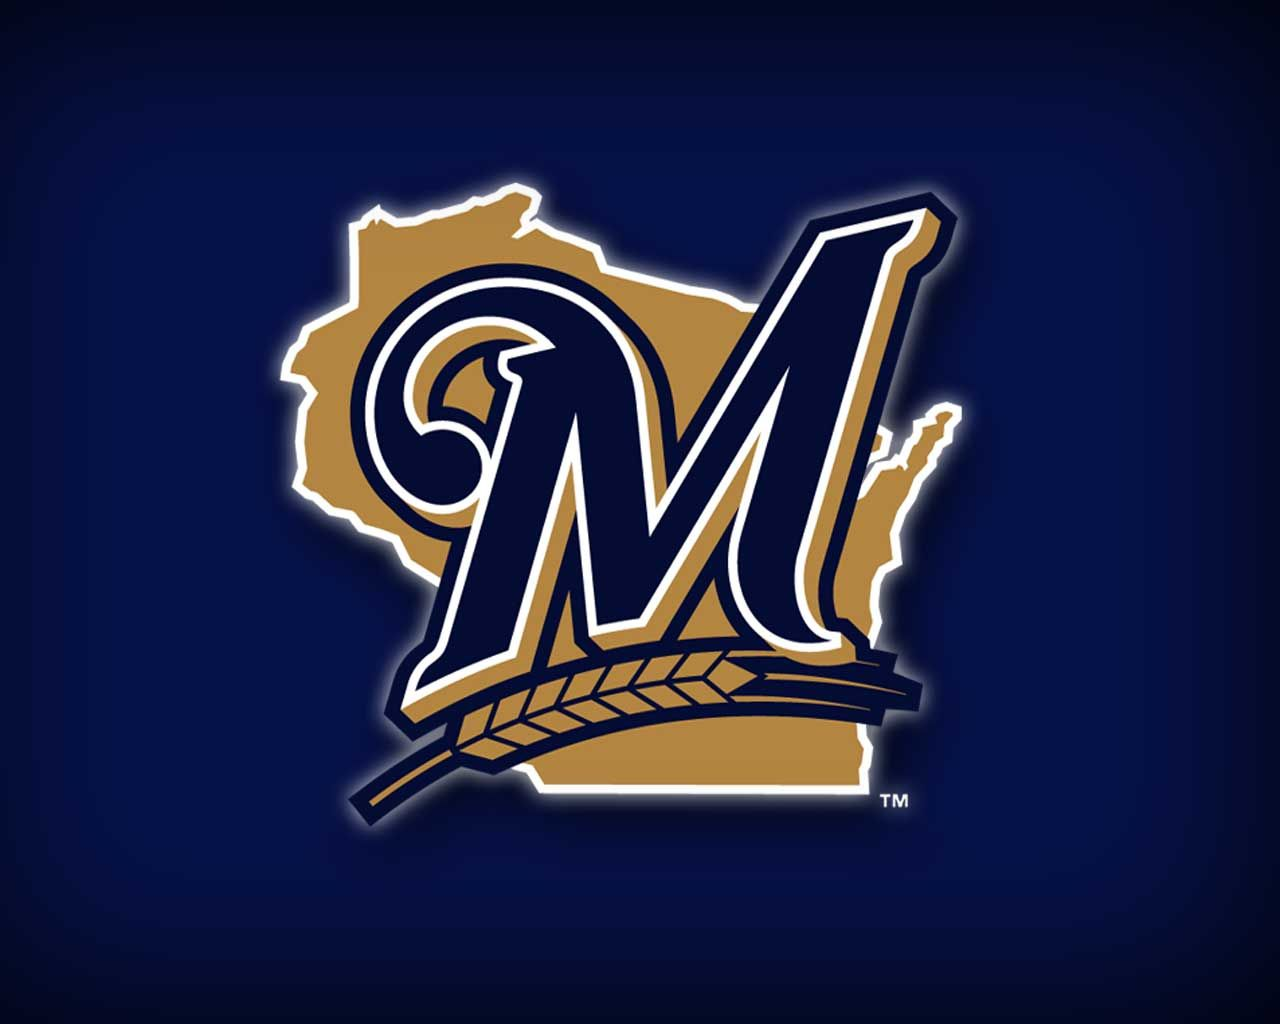 The Milwaukee Brewers are a professional baseball team